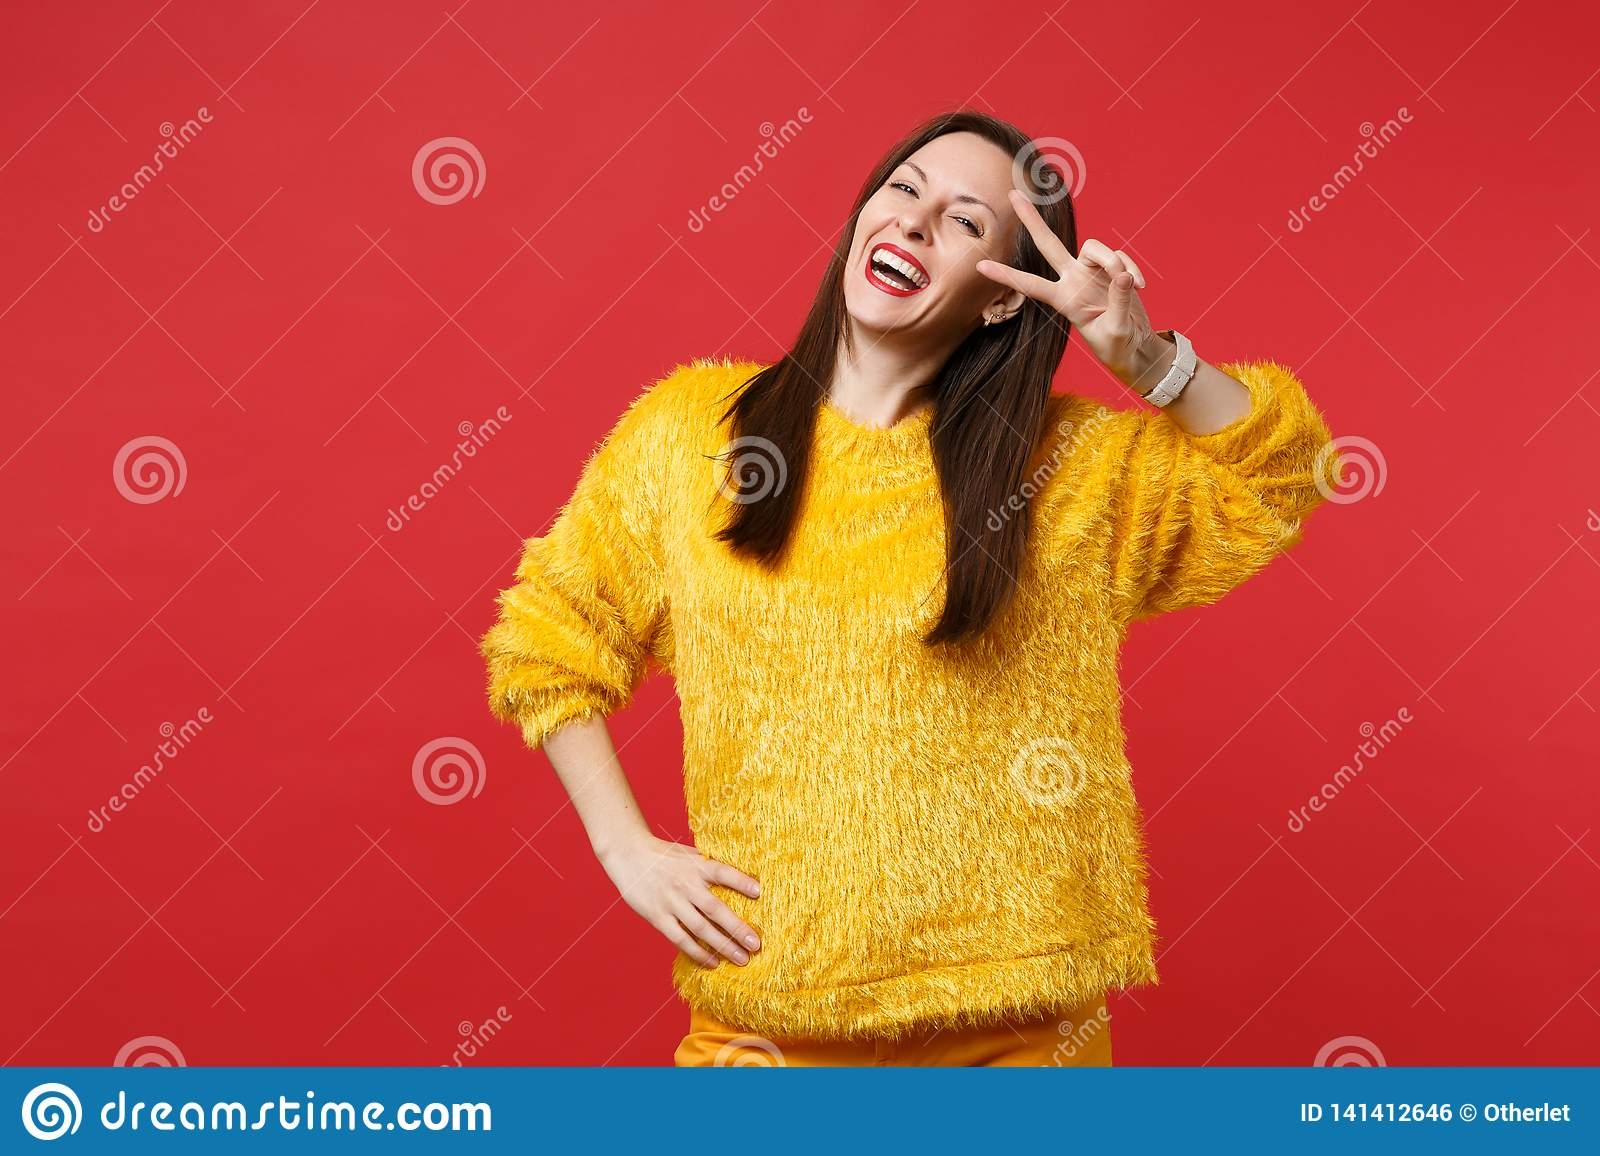 Portrait of laughing funny young woman in yellow fur sweater showing victory sign isolated on bright red wall background